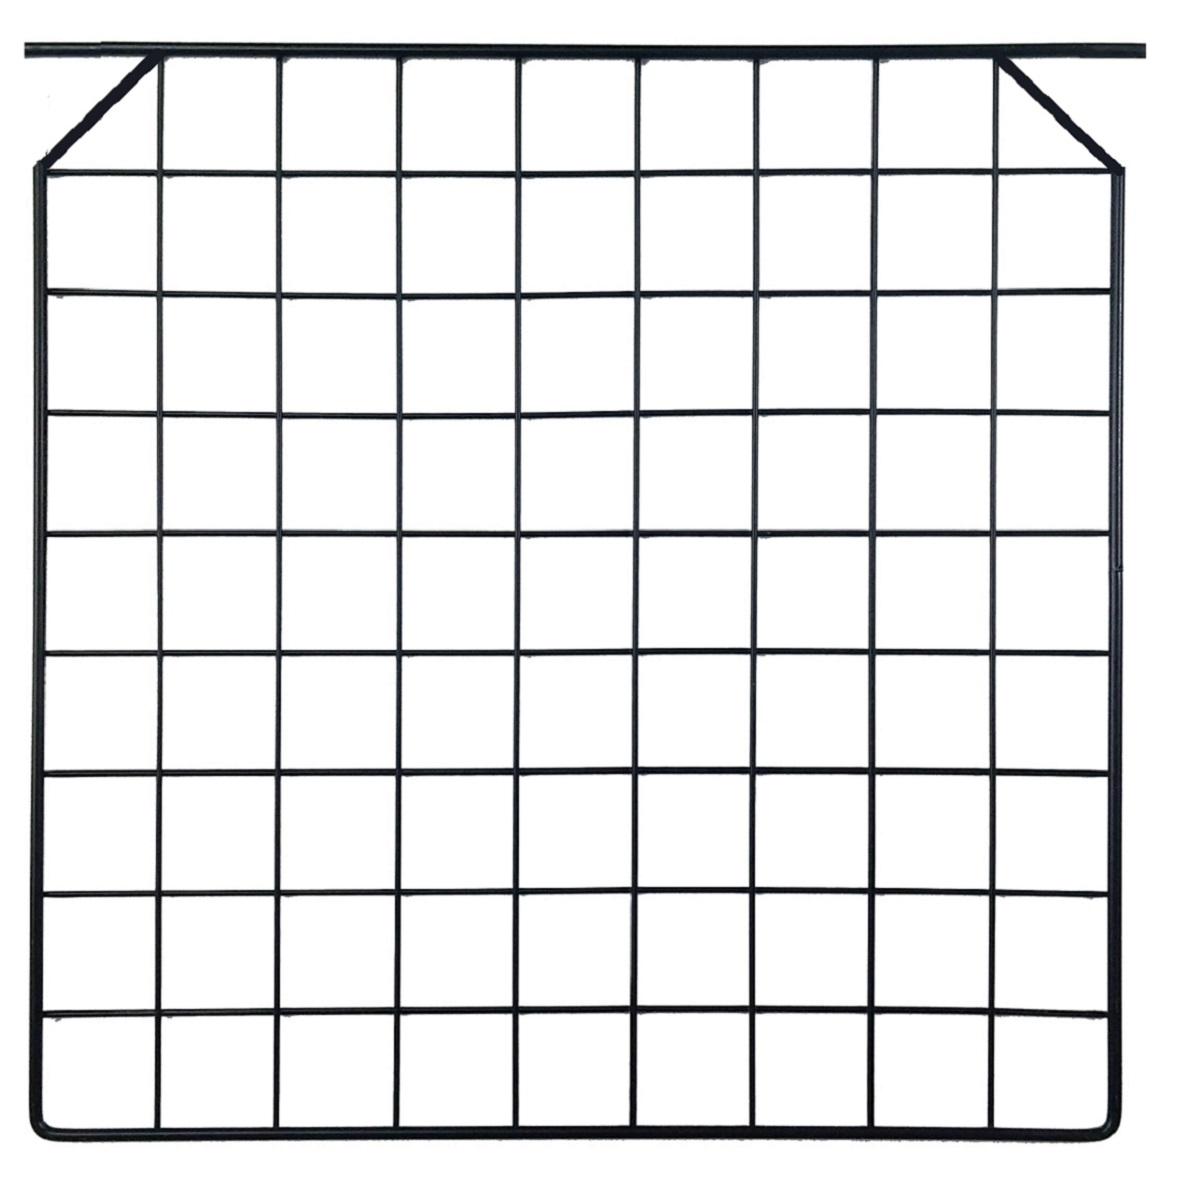 1afee49db1235 Swing Grid 9x9 inner squares, 14 x 14 inches